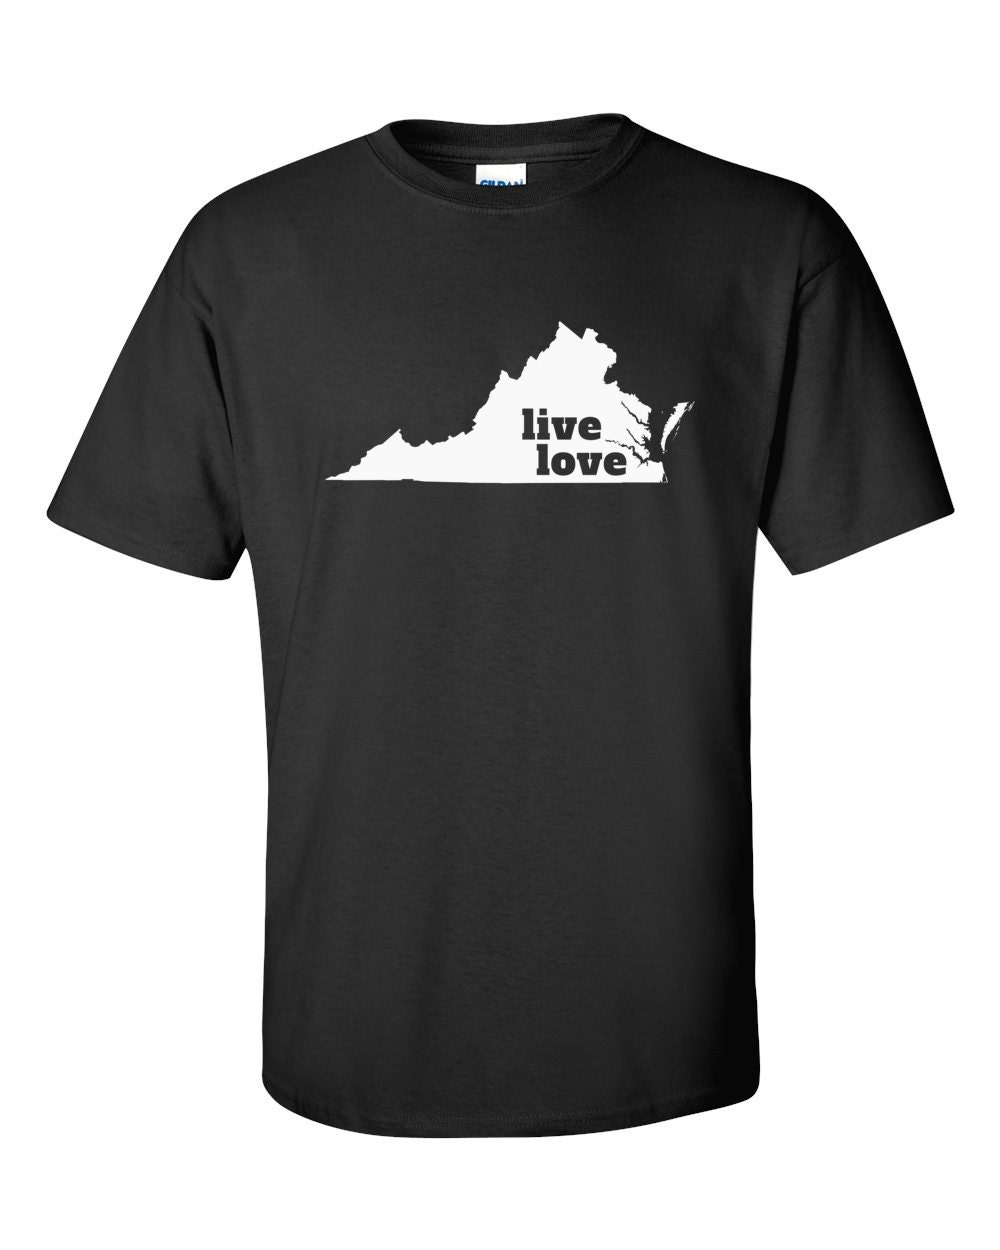 Virginia T-shirt - Live Love Virginia - My State Virginia T-shirt